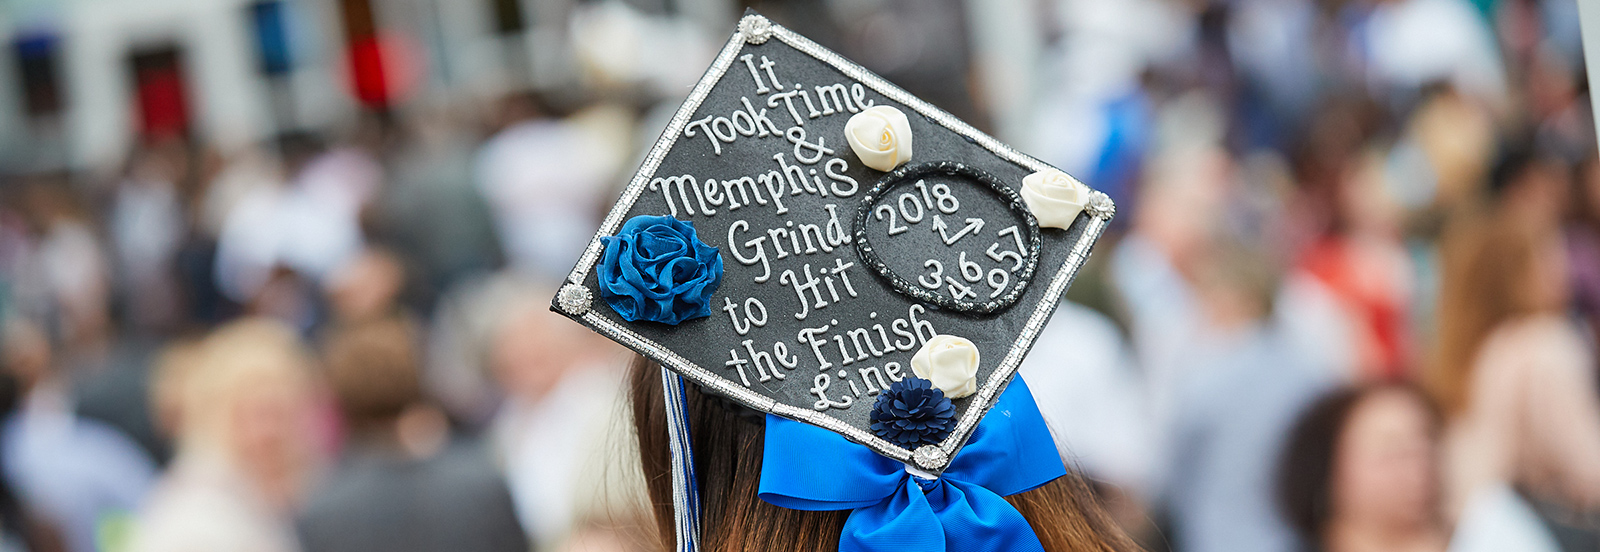 Mortar board that reads: It took time & Memphis Grind to hit the Finish Line